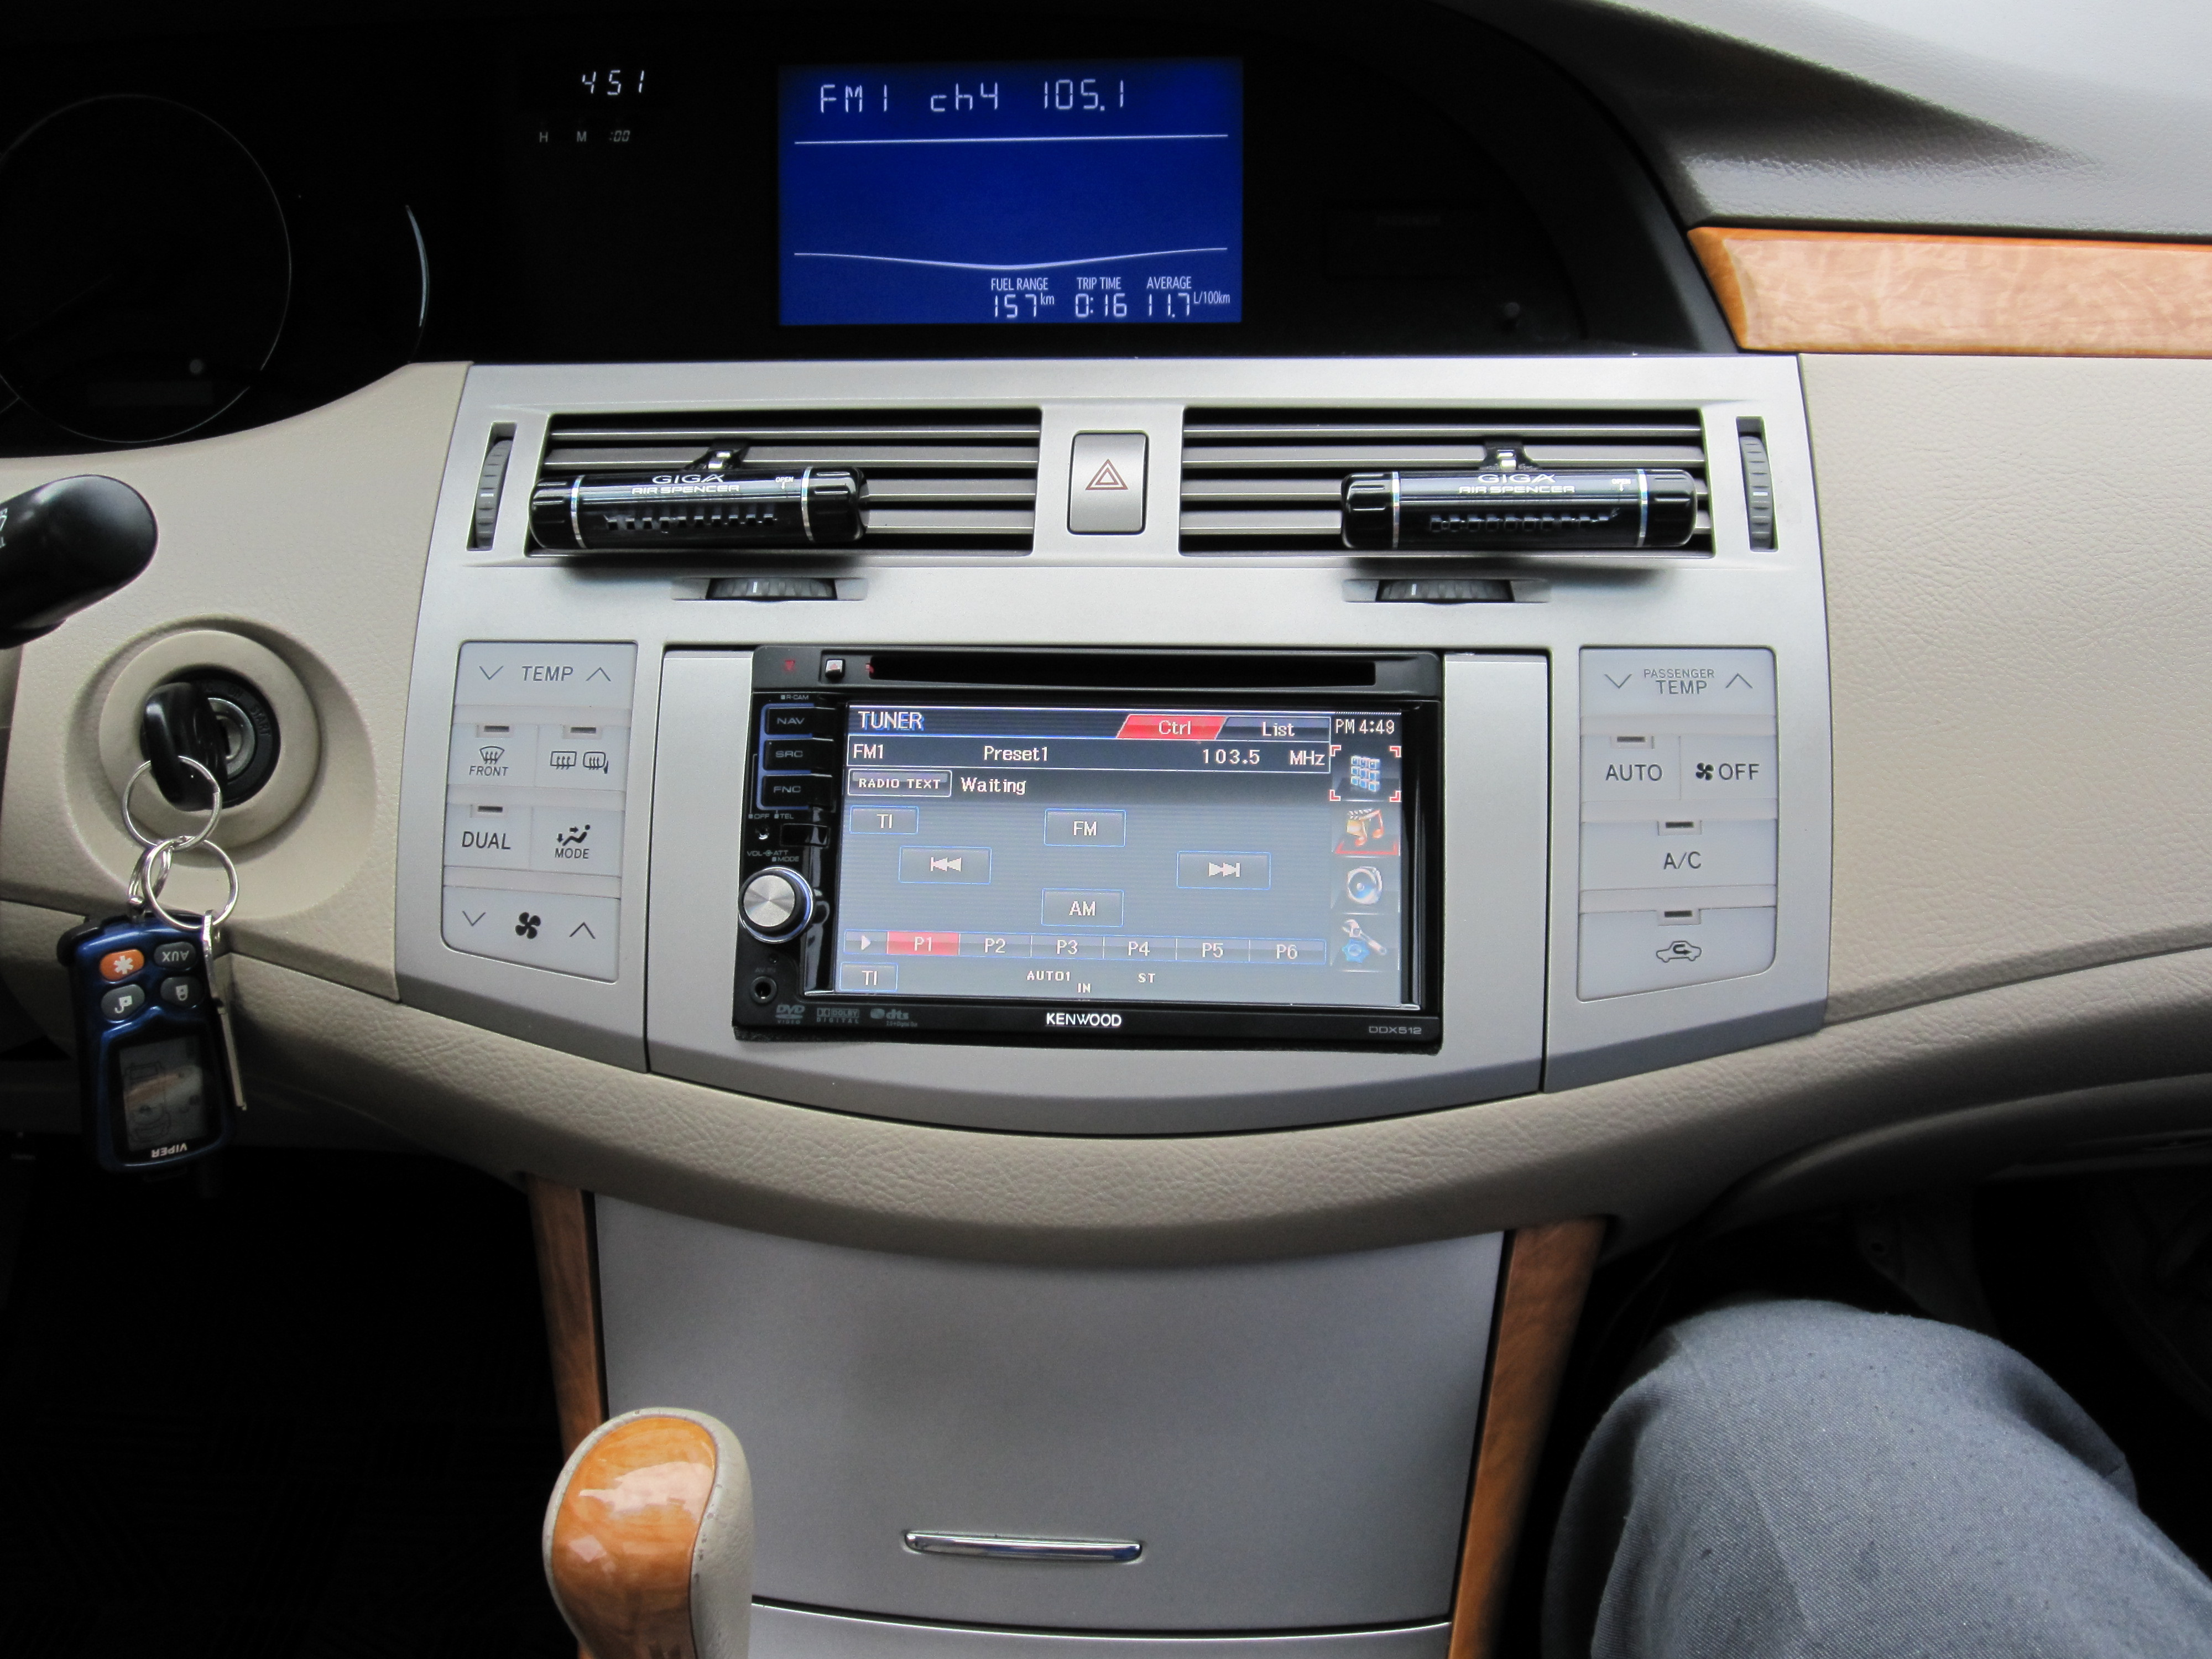 Watch further Apple Carplay Android Auto Third Party Pioneer Avic 8100nex Review furthermore 161986 1993 Mustang Cobra Eec Pinout Conflict moreover 120984463785 likewise 177603 2006 Toyota Avalon Double Din Dash Kit. on toyota tacoma stereo install kit